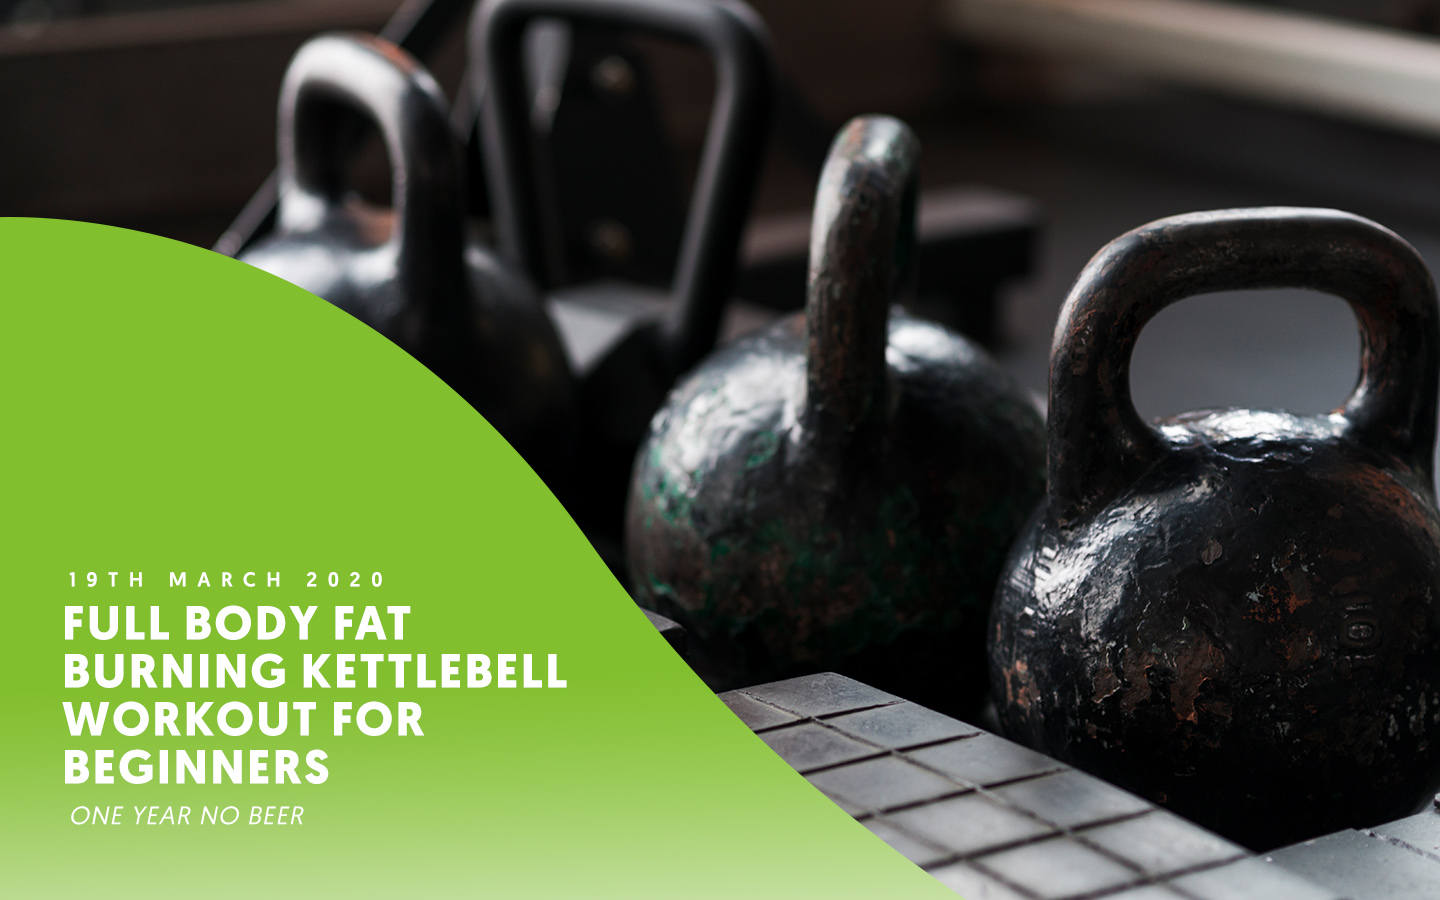 Kettlebells training guide for beginners: Get swinging fit with Cavemantraining